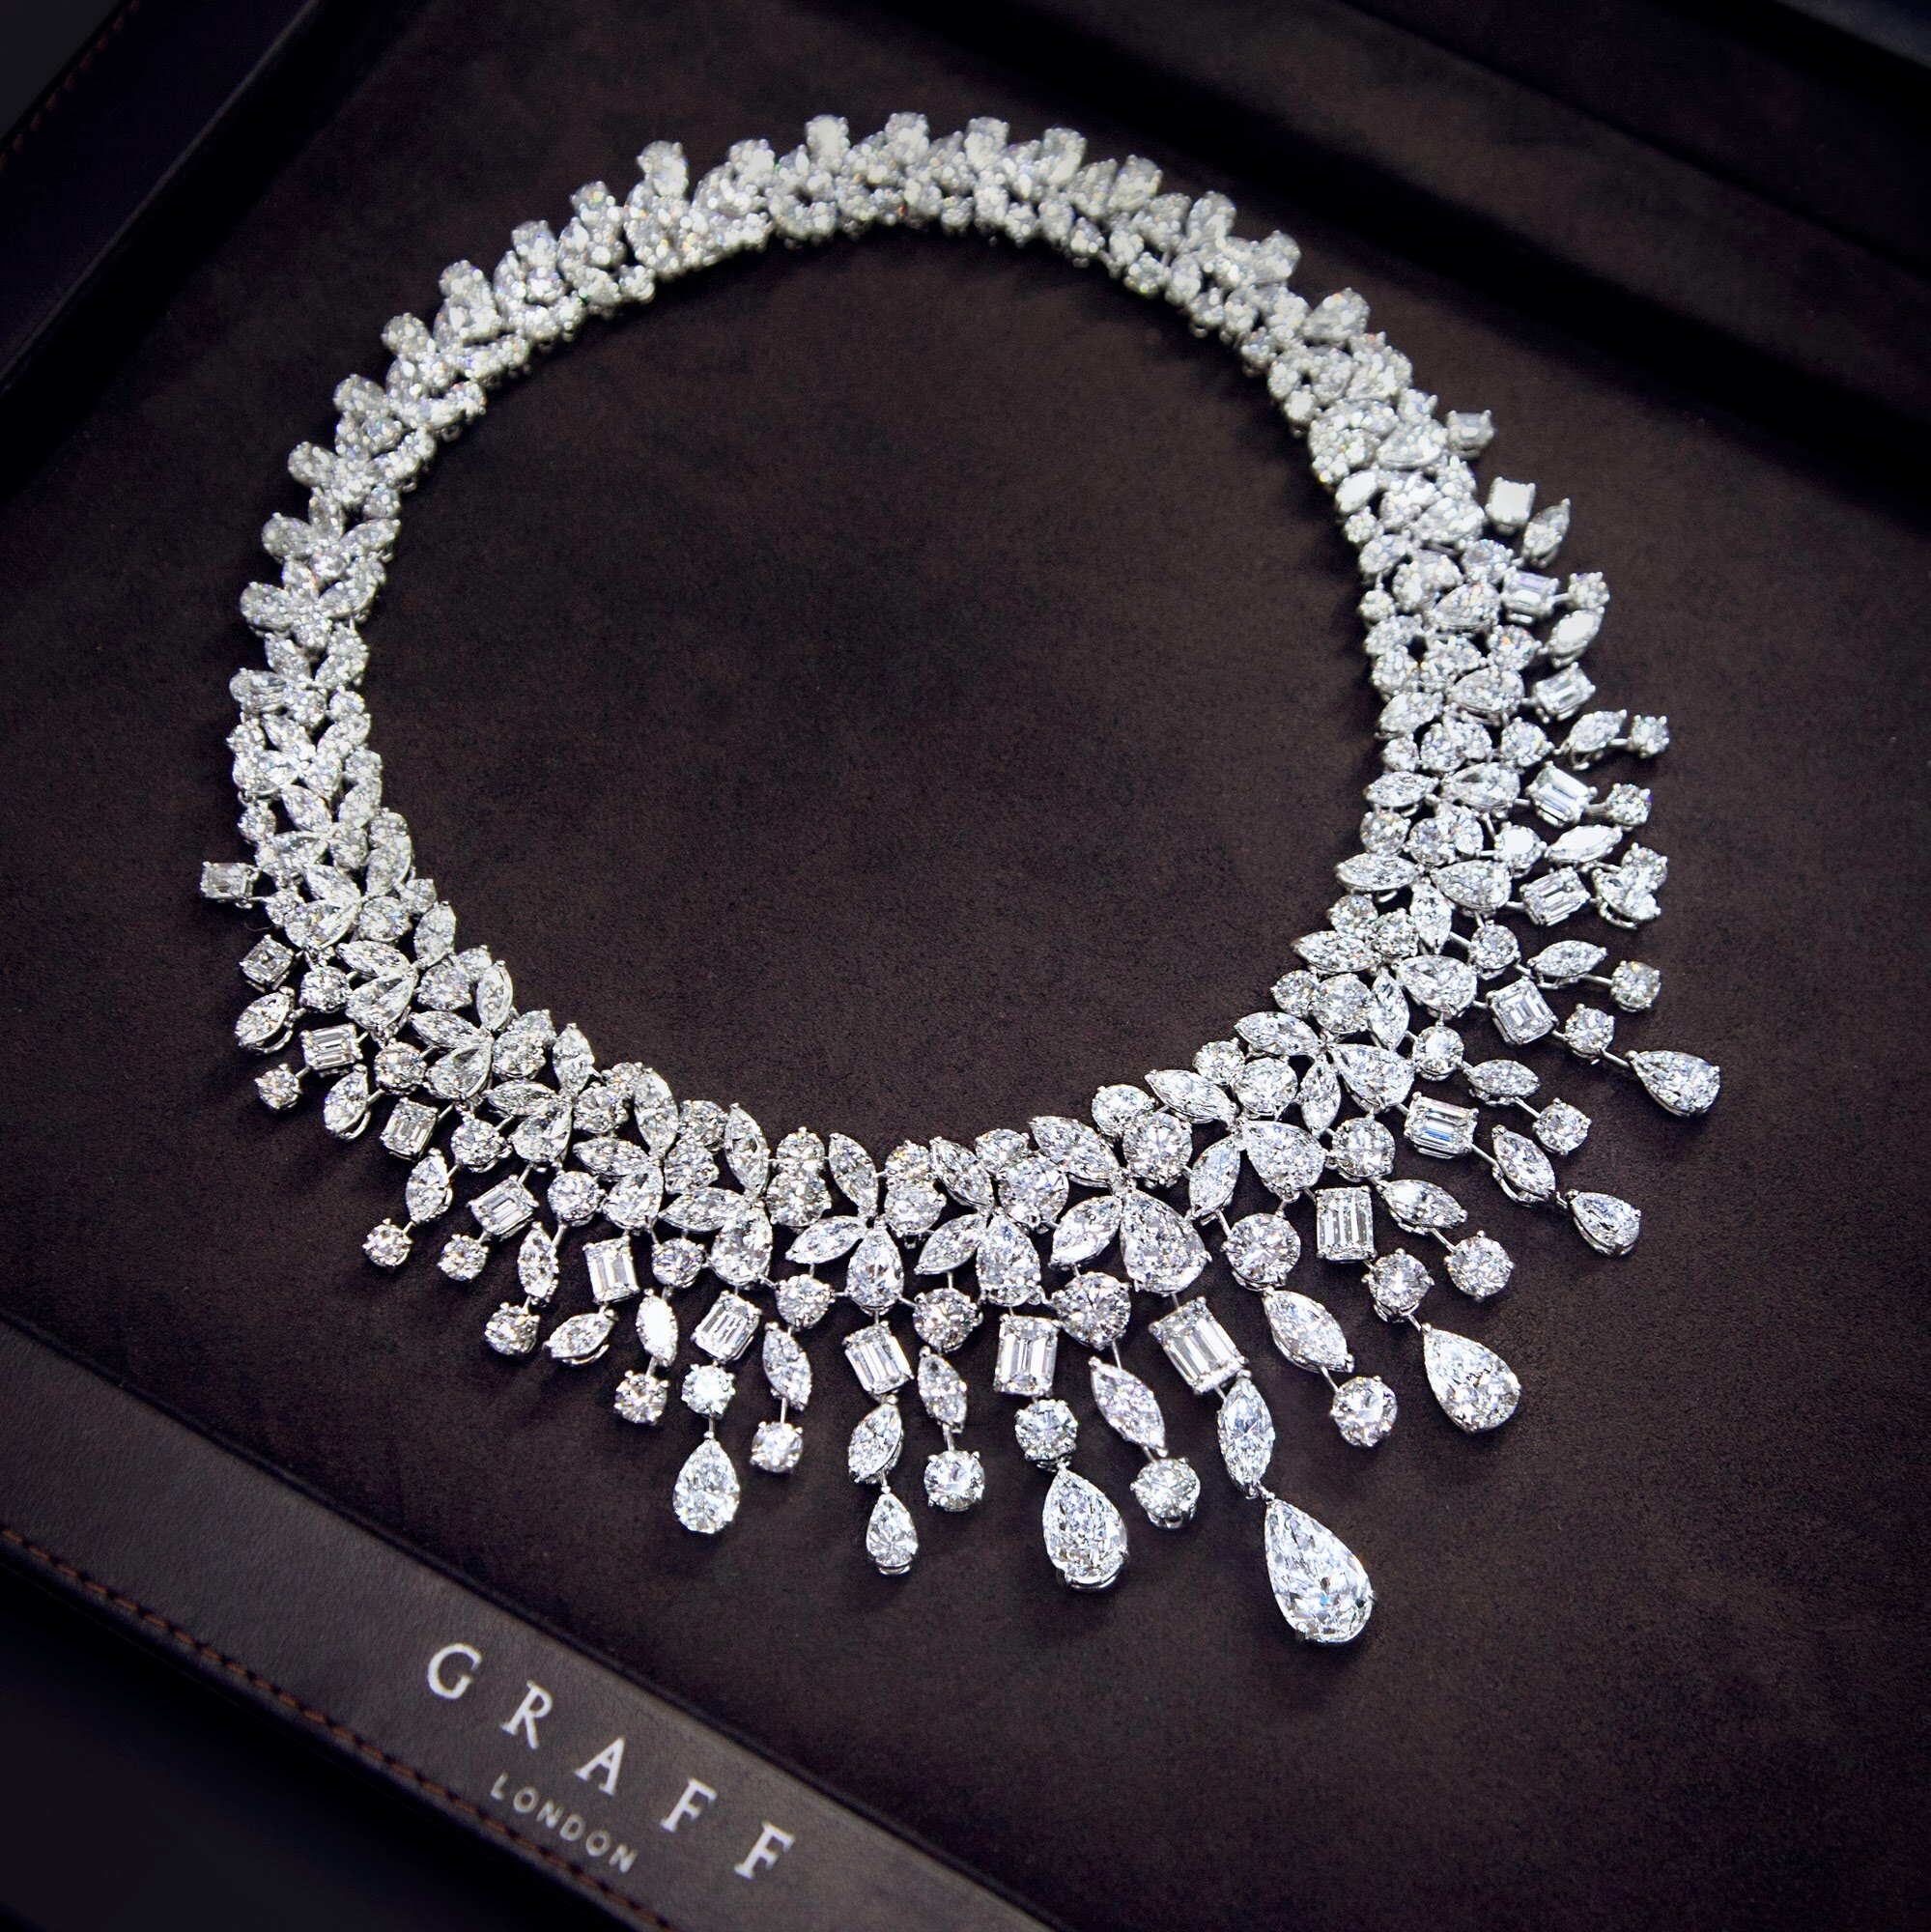 Top Shared 16 Diamond Necklace Designs | MostBeautifulThings